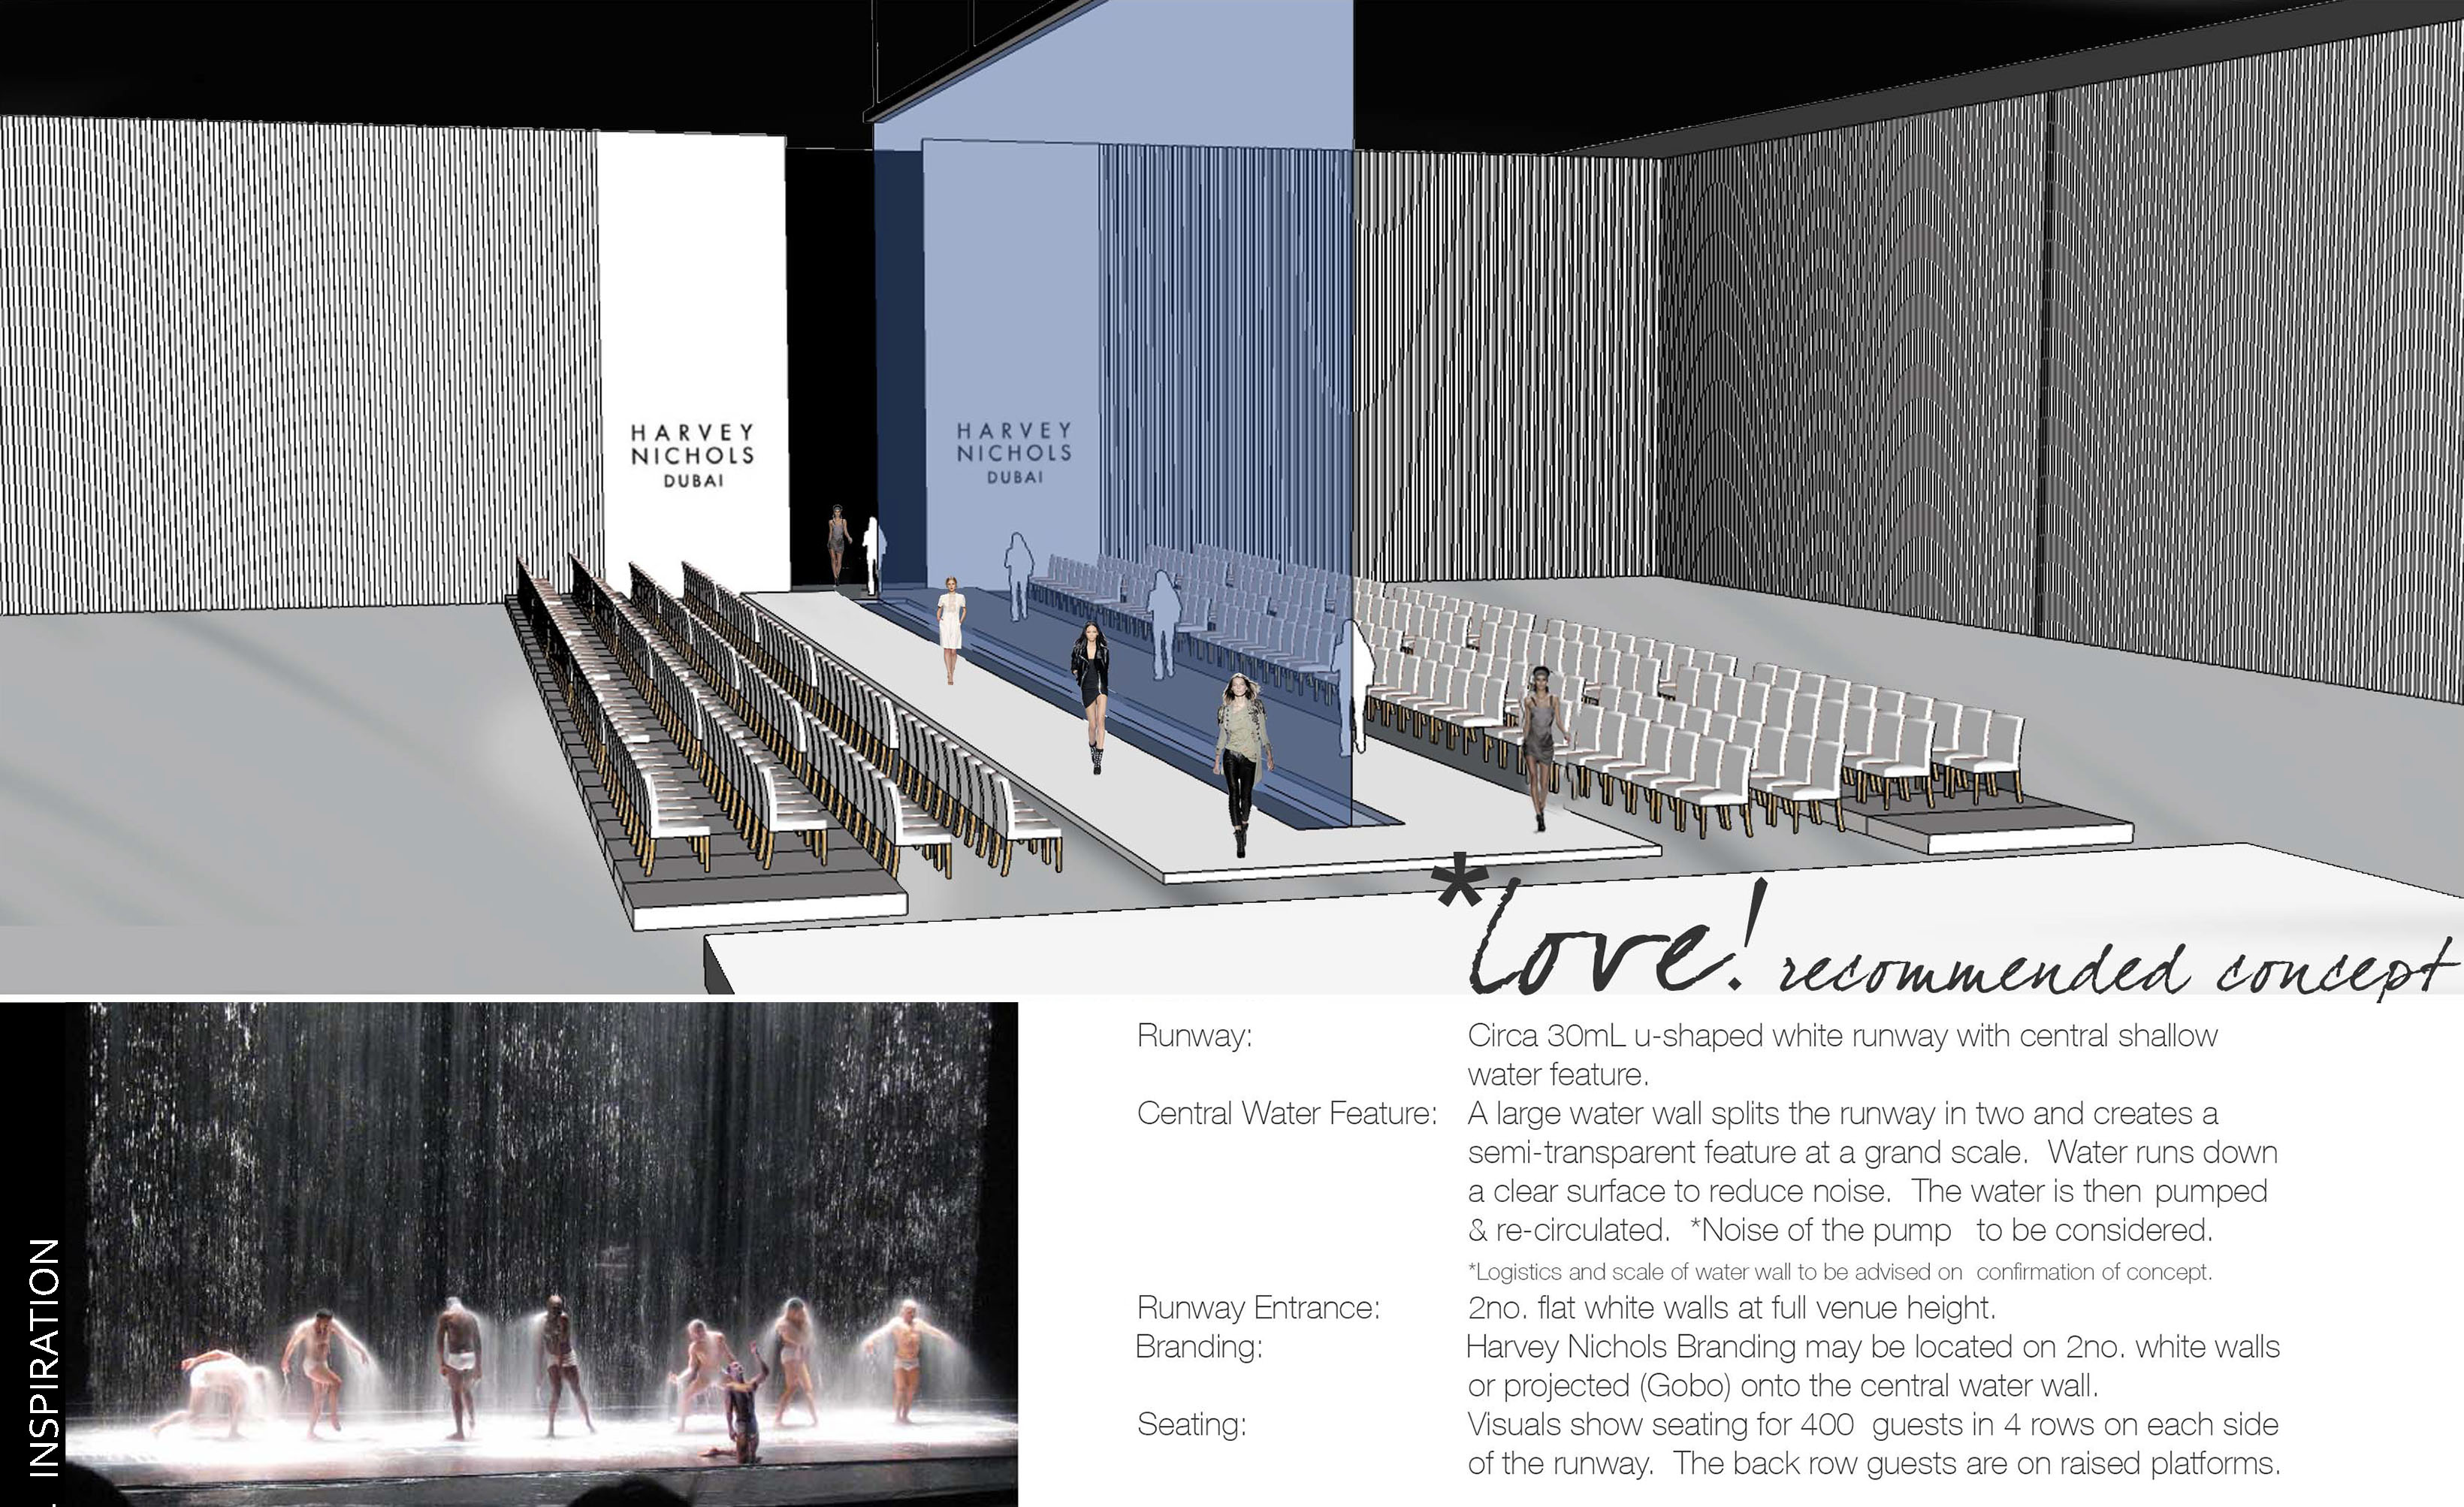 Runway Design - Water Wall